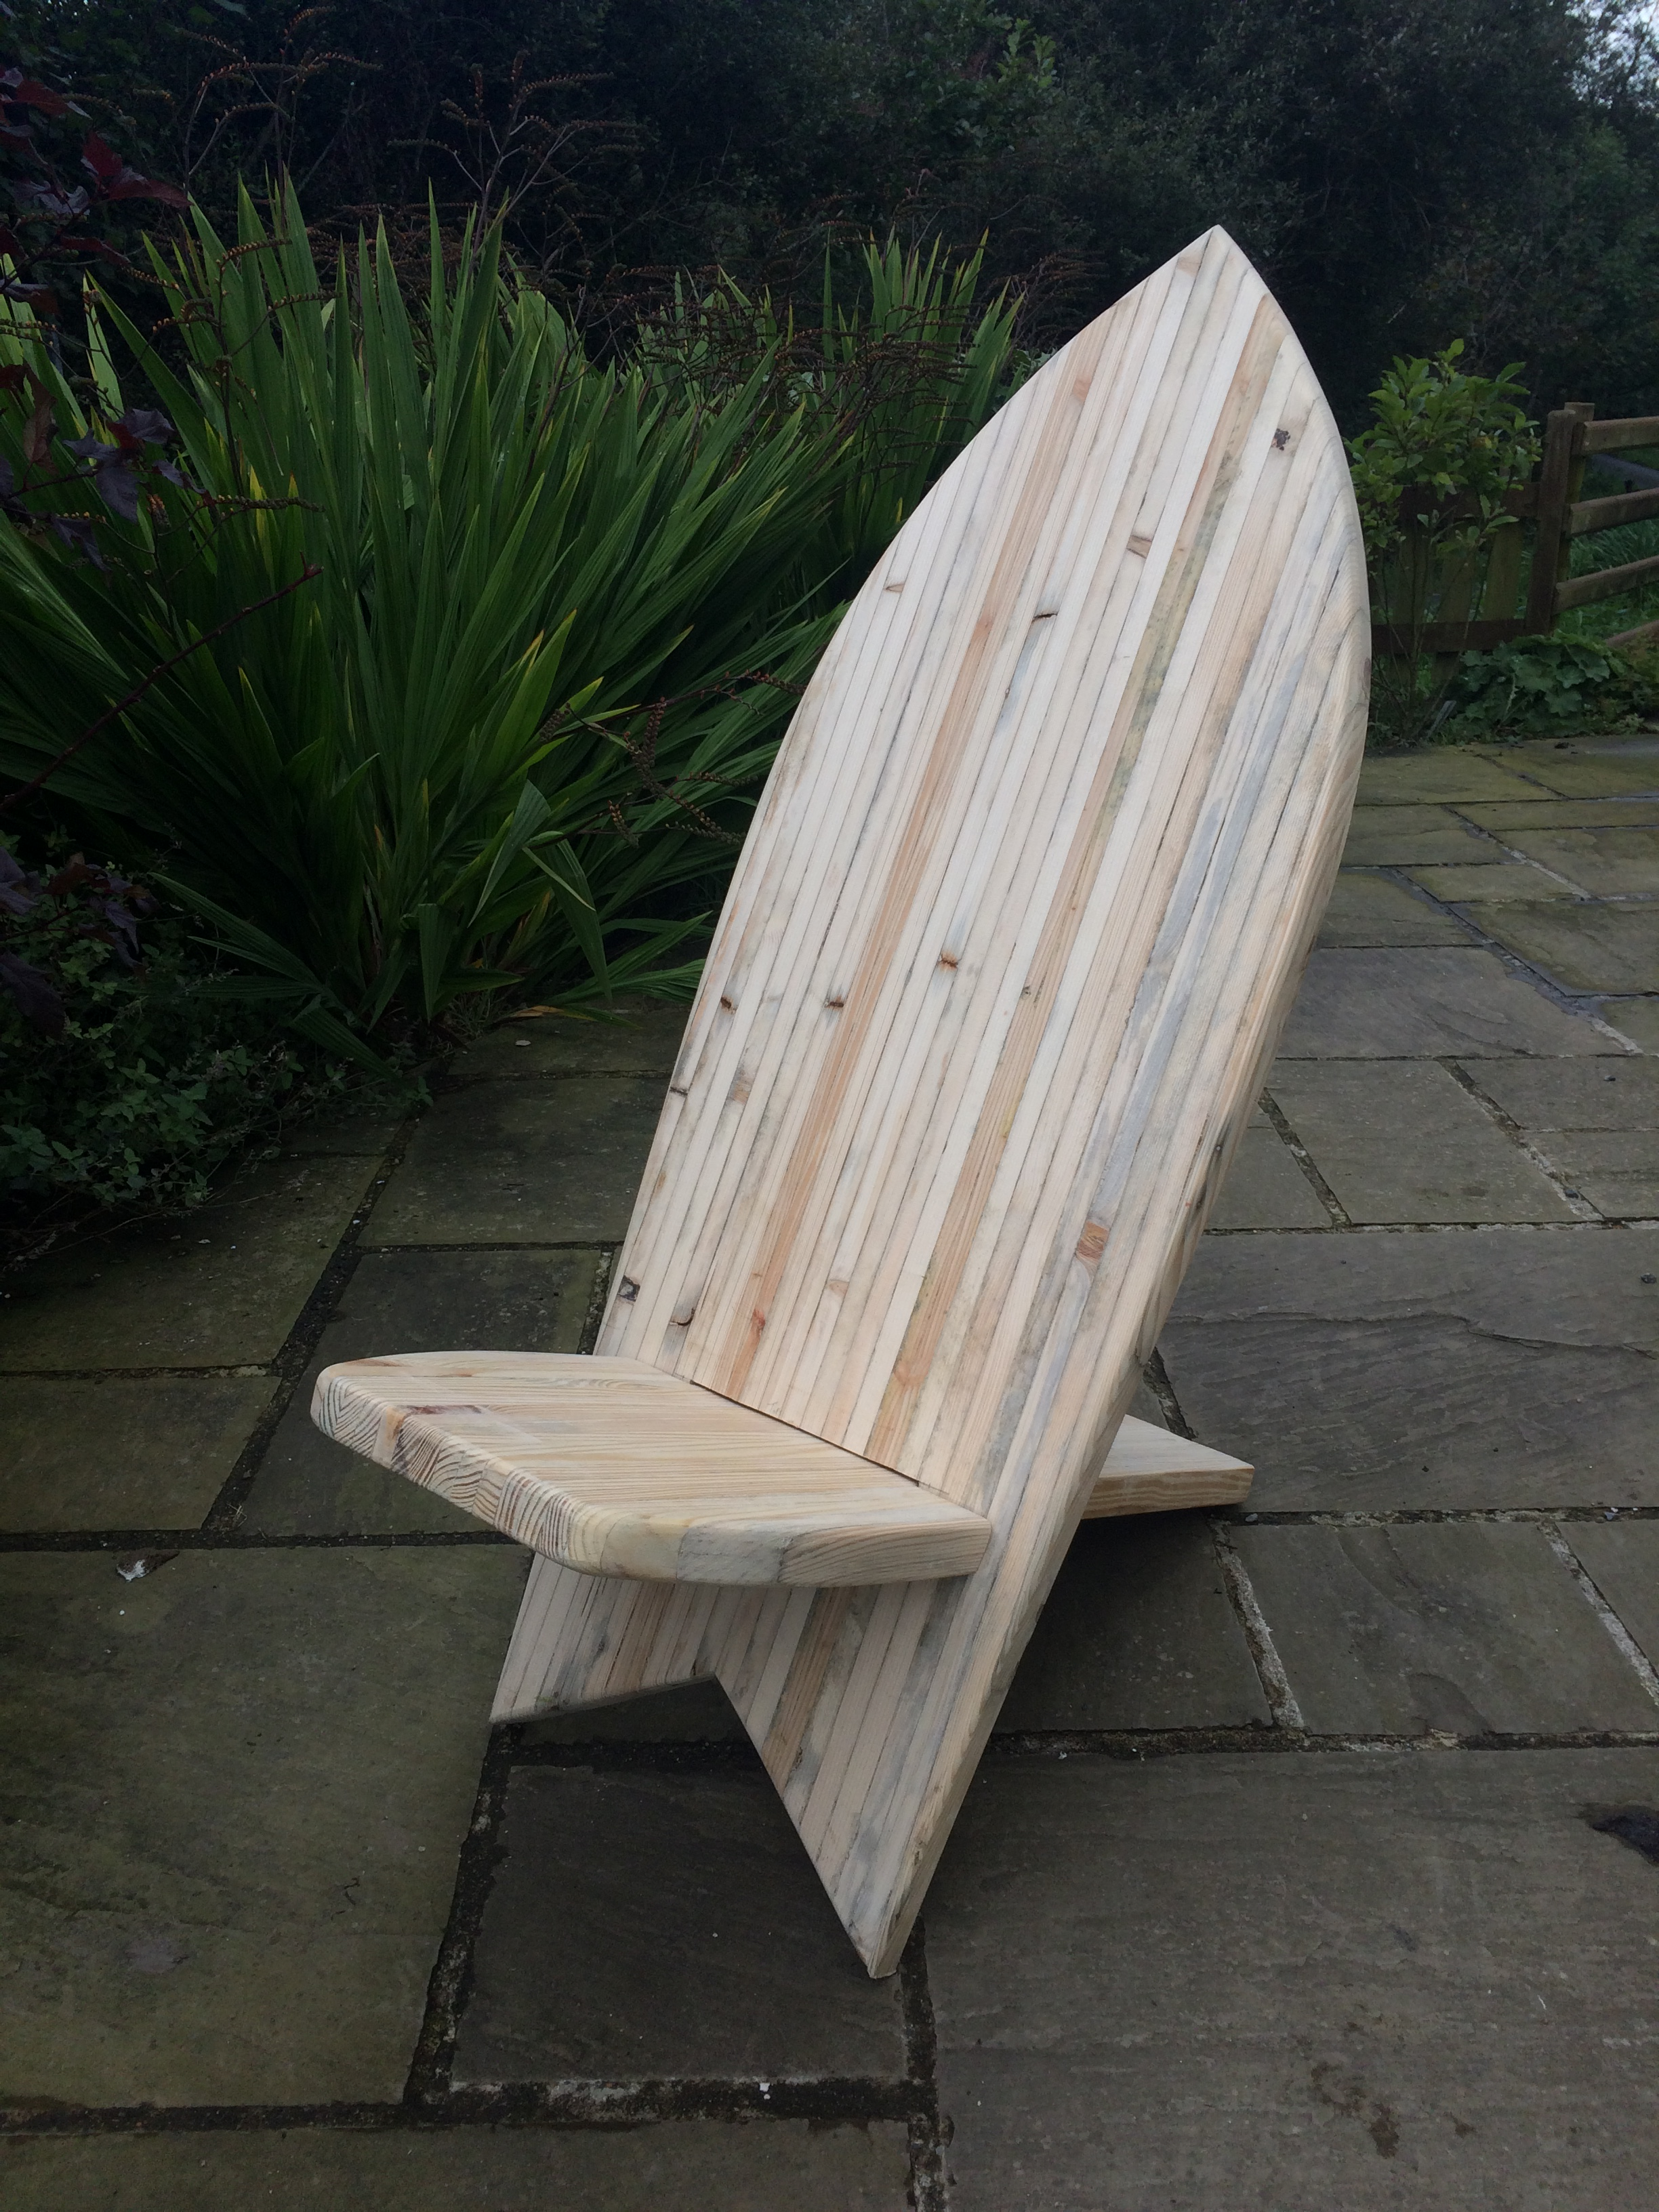 The Layback Chair - surfboard chair made from pallets